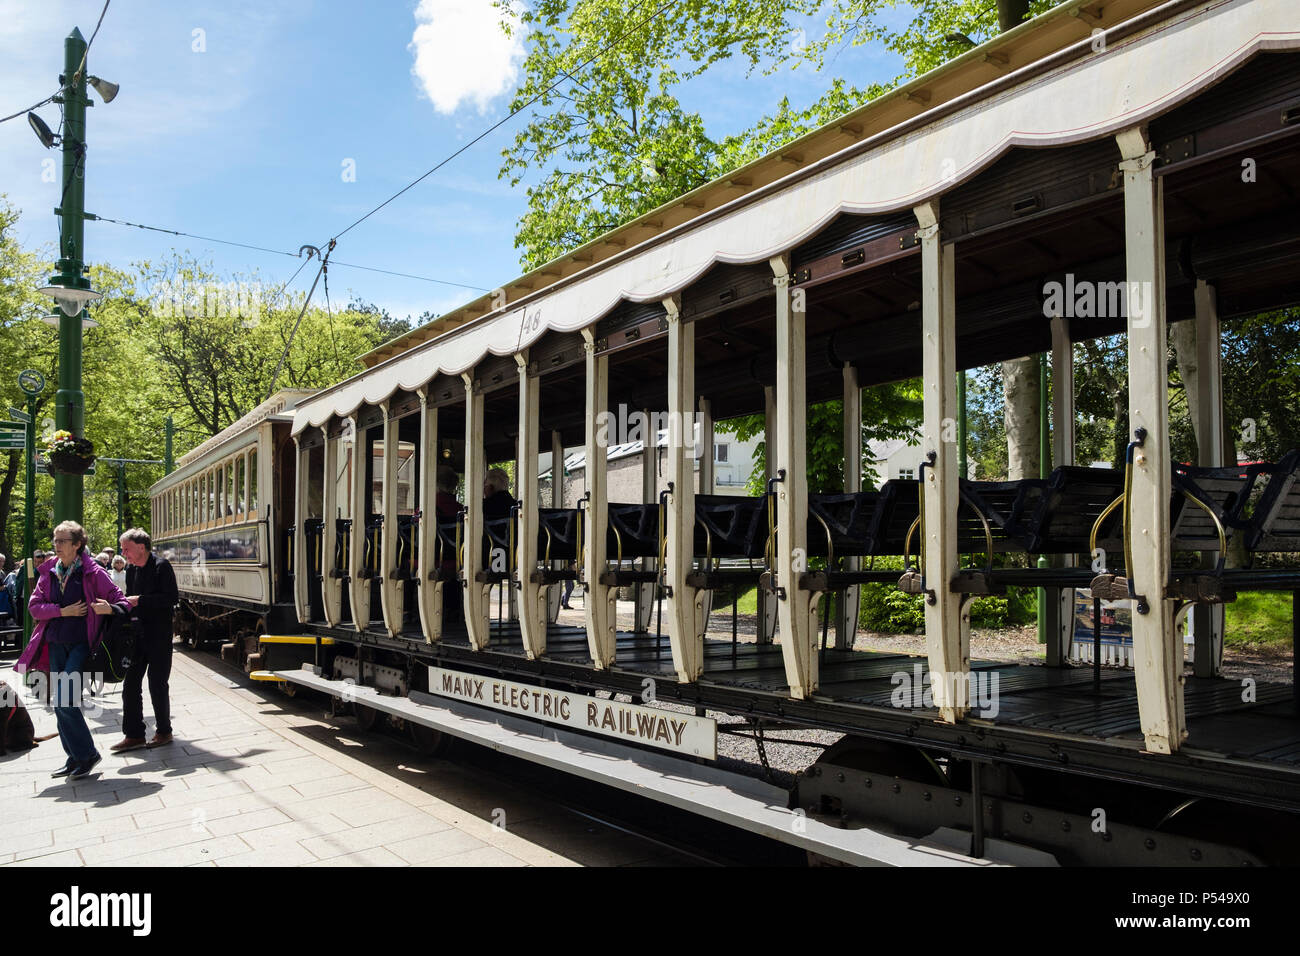 Passengers on platform outside old Manx Electric Railway / Tramway train carriages in the station. Laxey, Isle of Man, British Isles - Stock Image